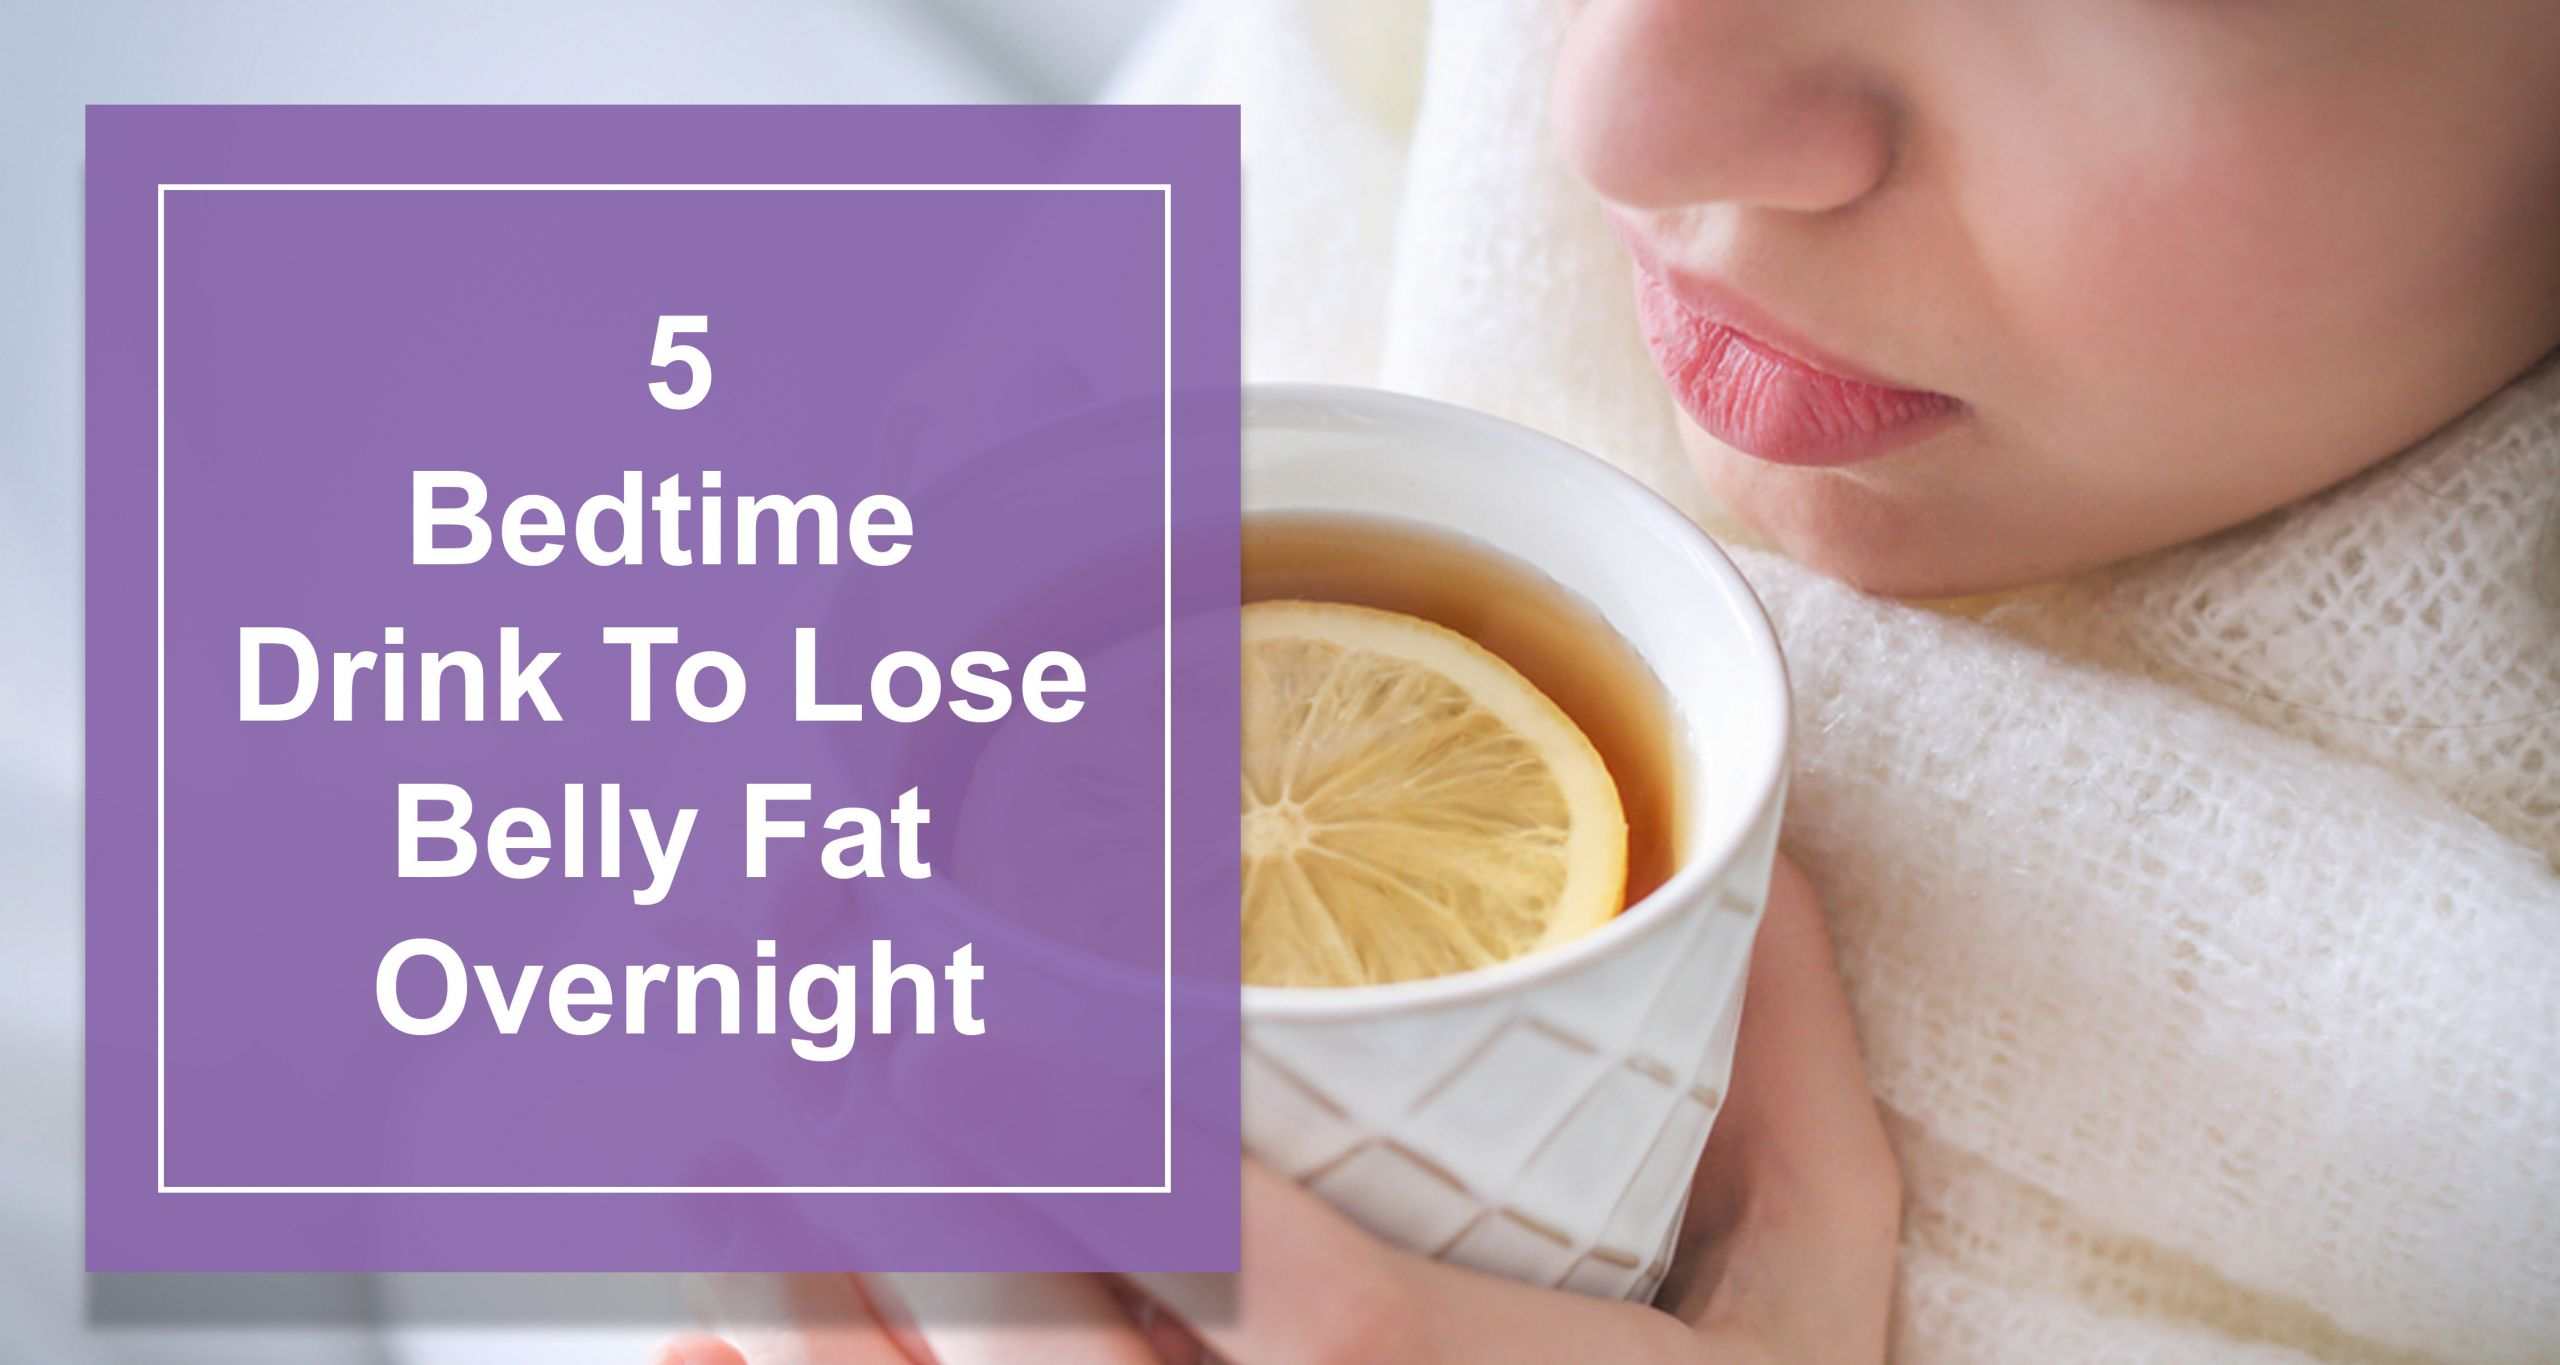 How To Lose Belly Fat Overnight  5 Bedtime Drink To Lose Belly Fat Overnight Best Natural